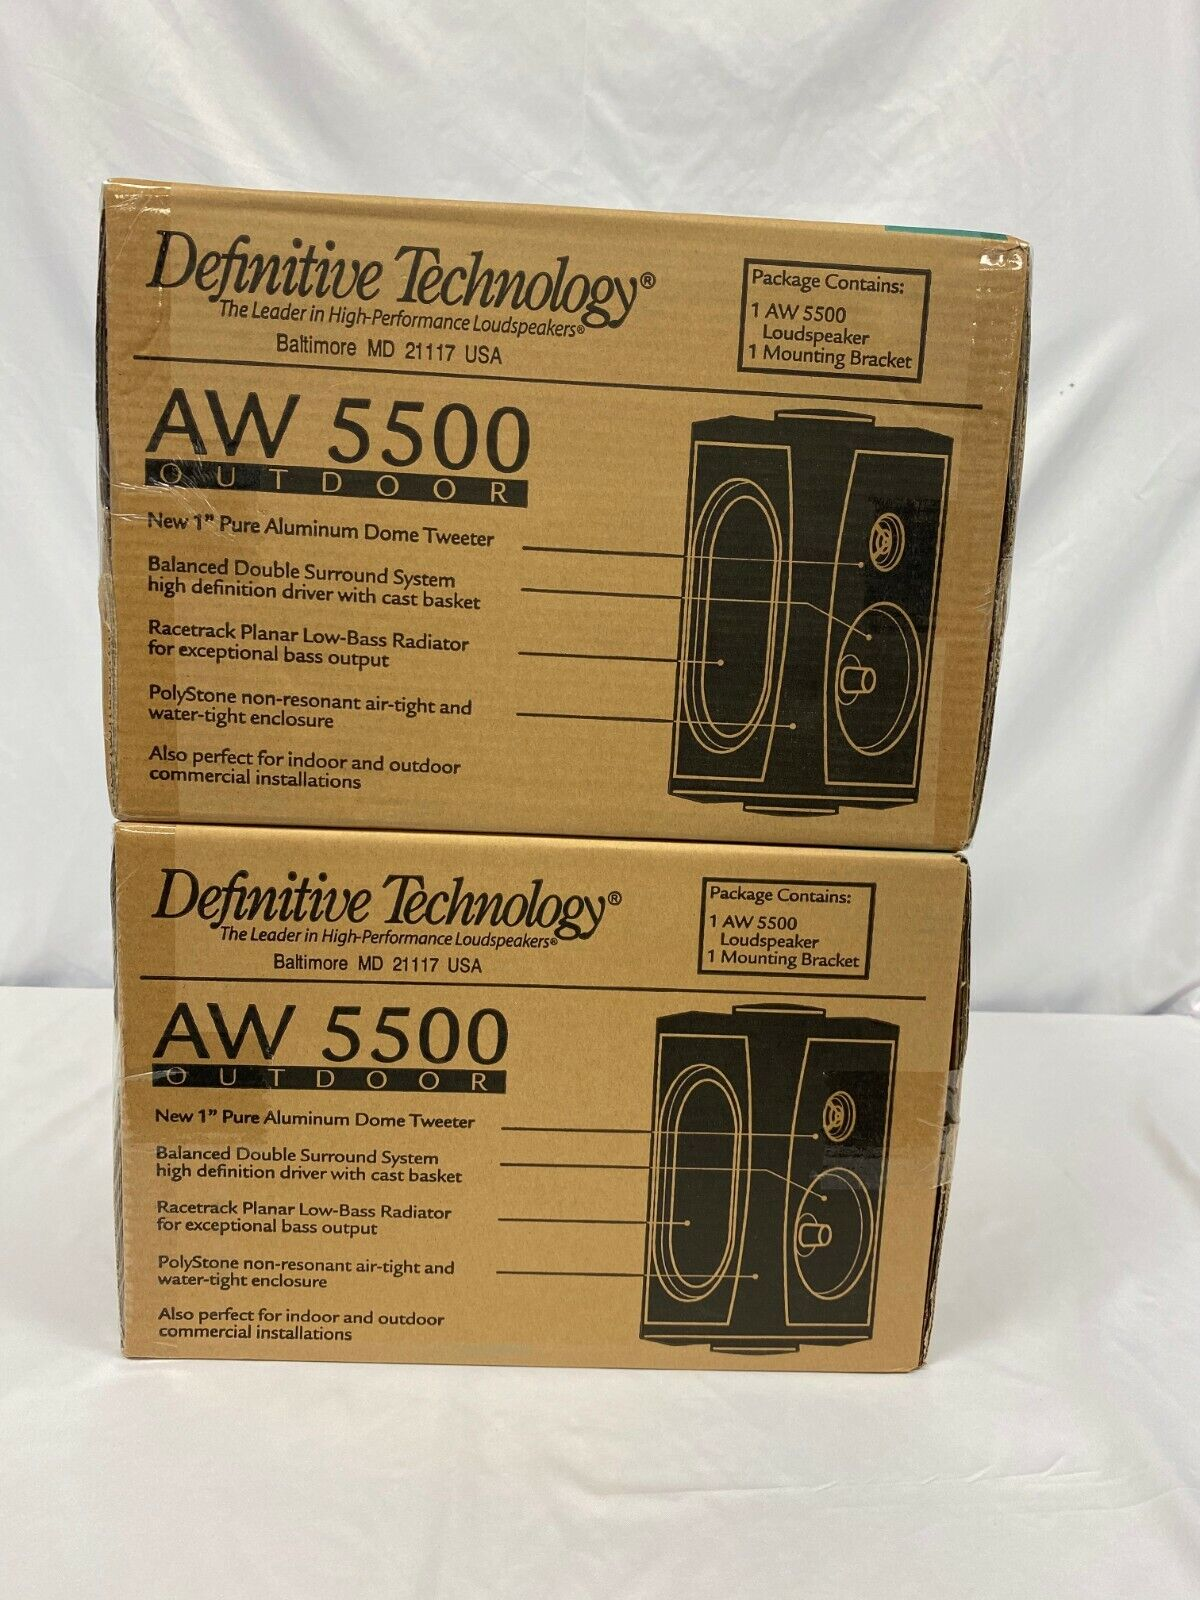 Definitive Technology AW 5500 Outdoor Speaker